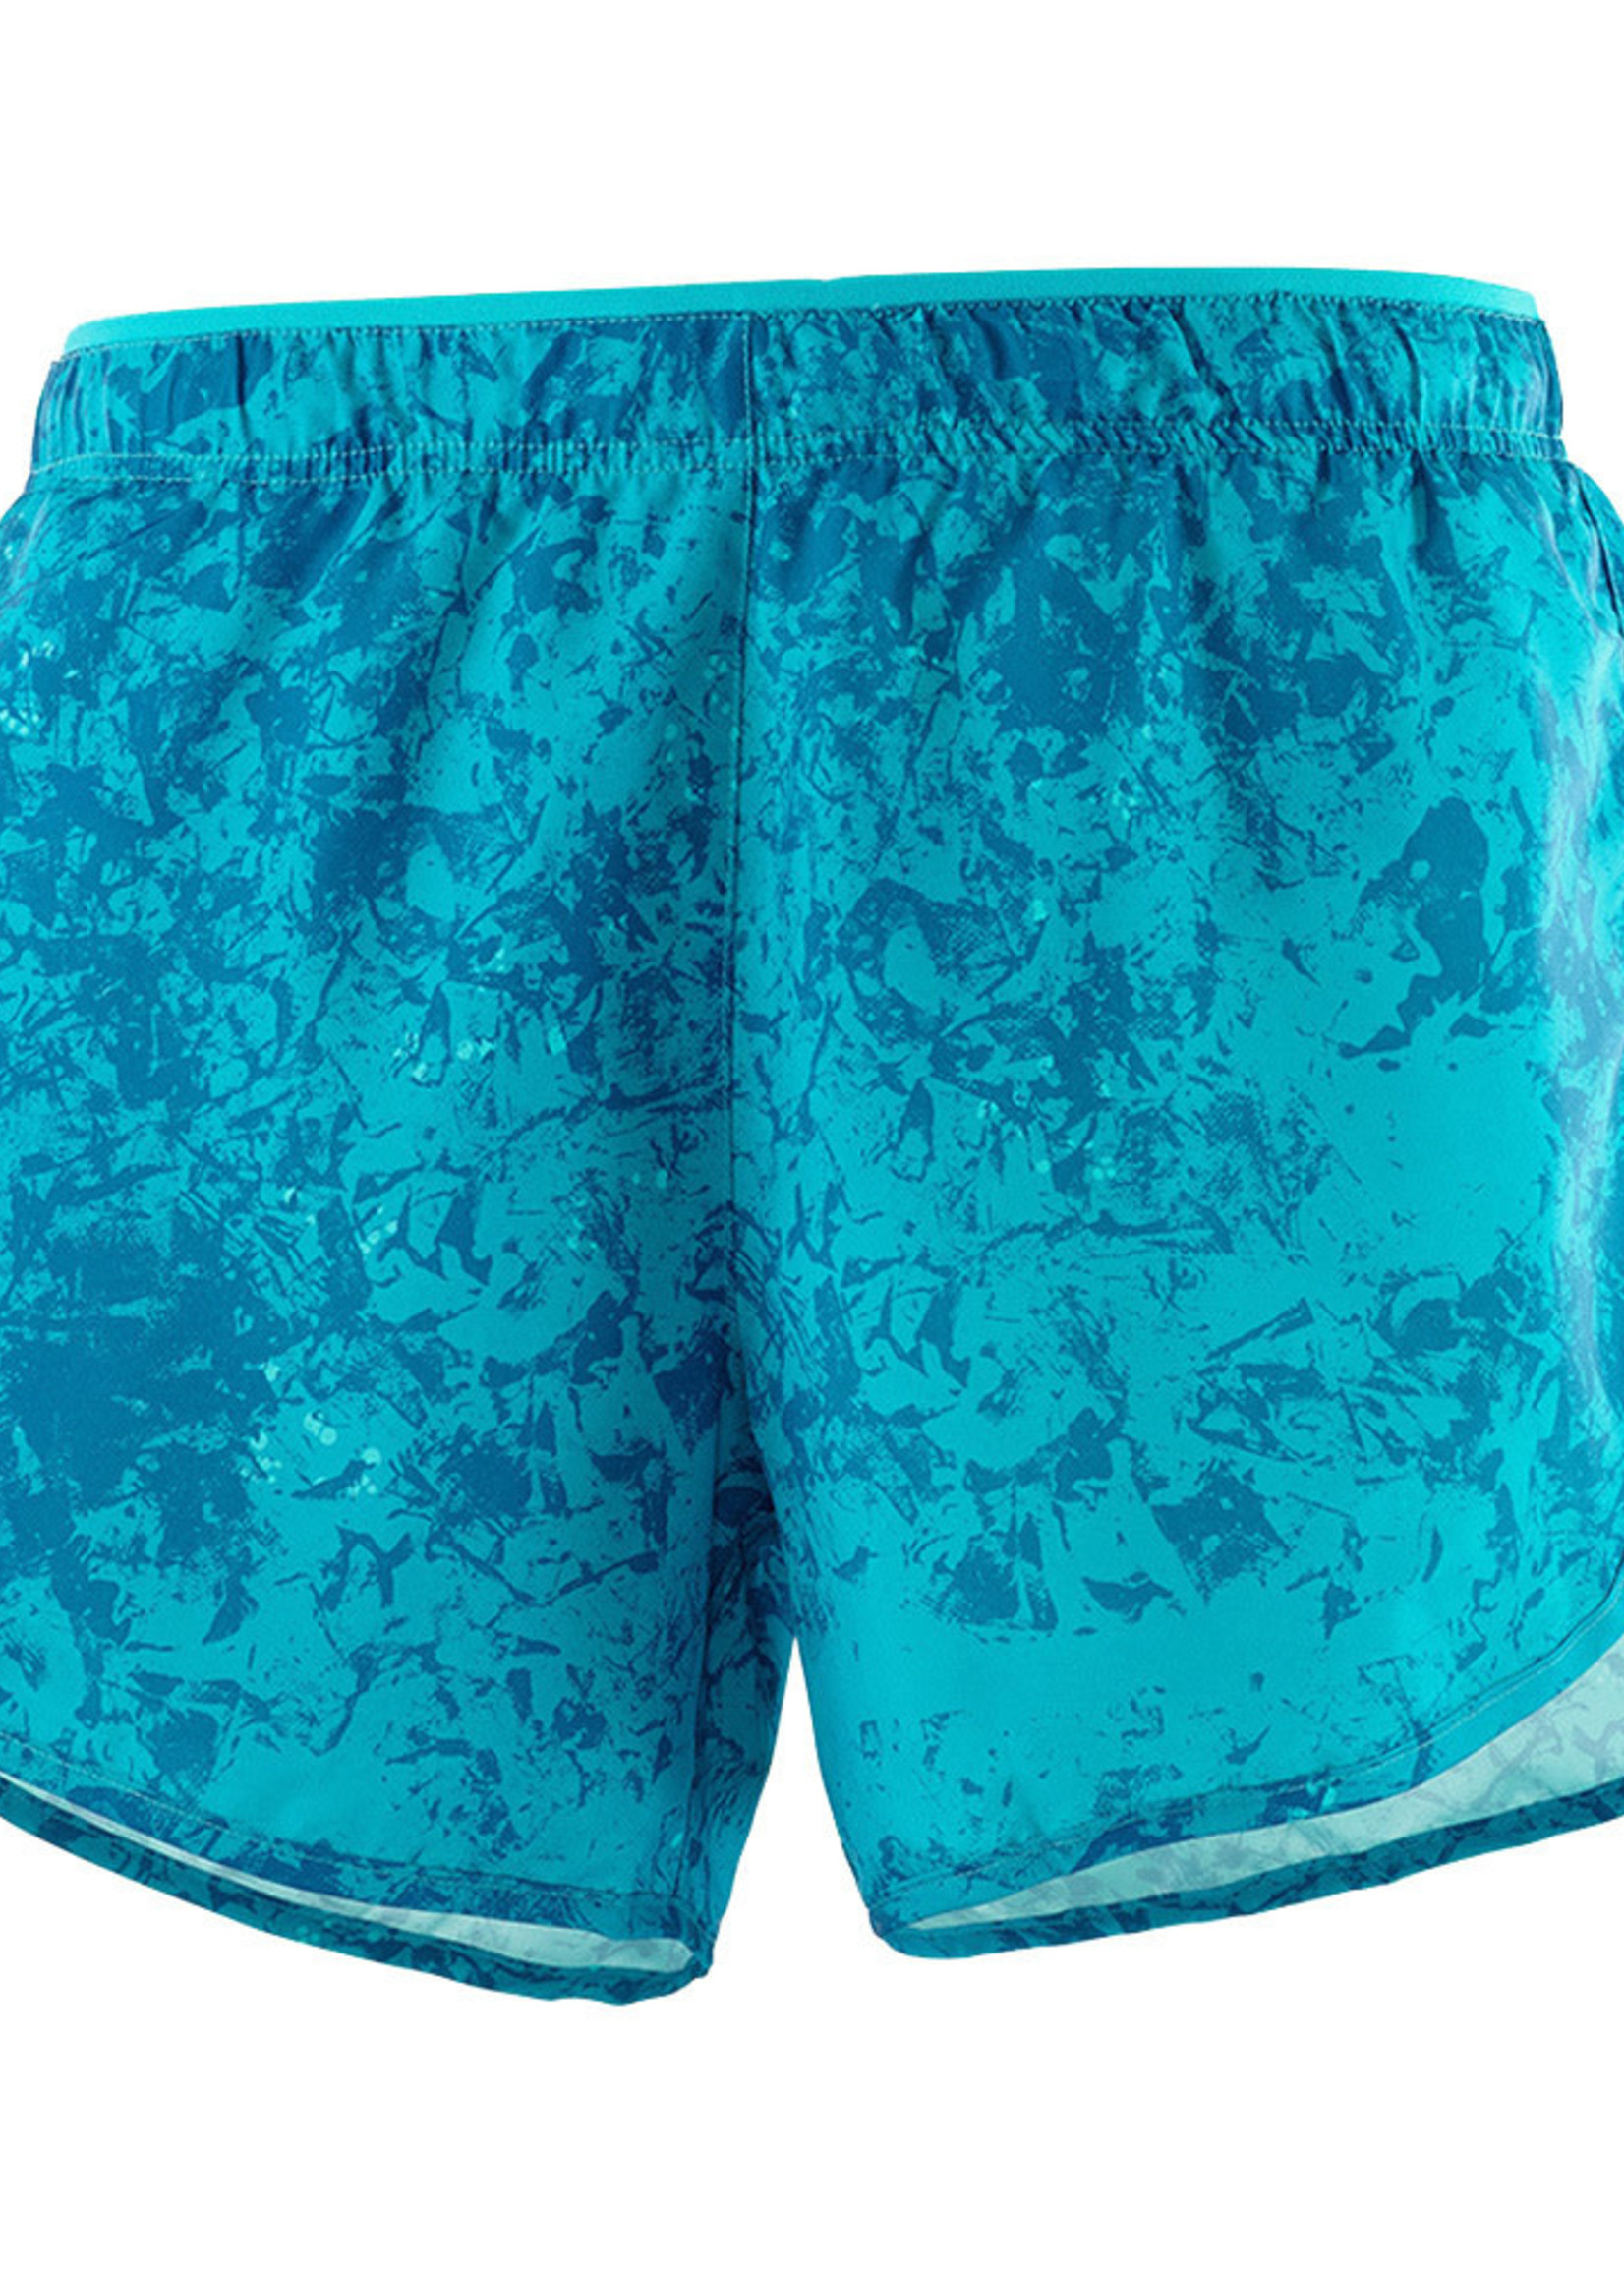 Salomon Salomon Agile Shorts Women's